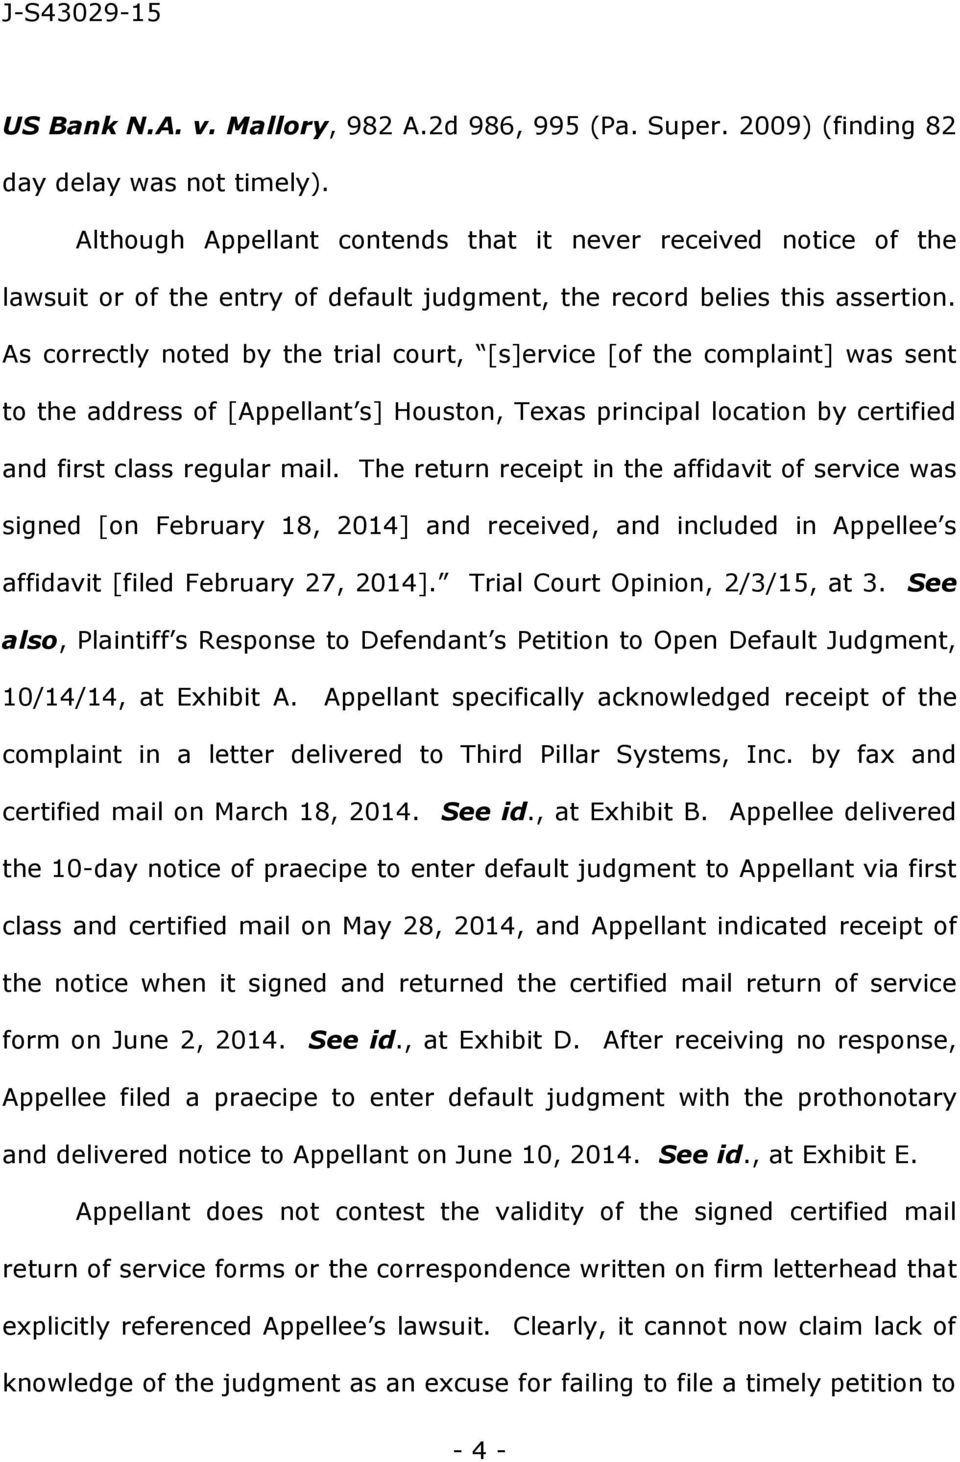 As correctly noted by the trial court, [s]ervice [of the complaint] was sent to the address of [Appellant s] Houston, Texas principal location by certified and first class regular mail.